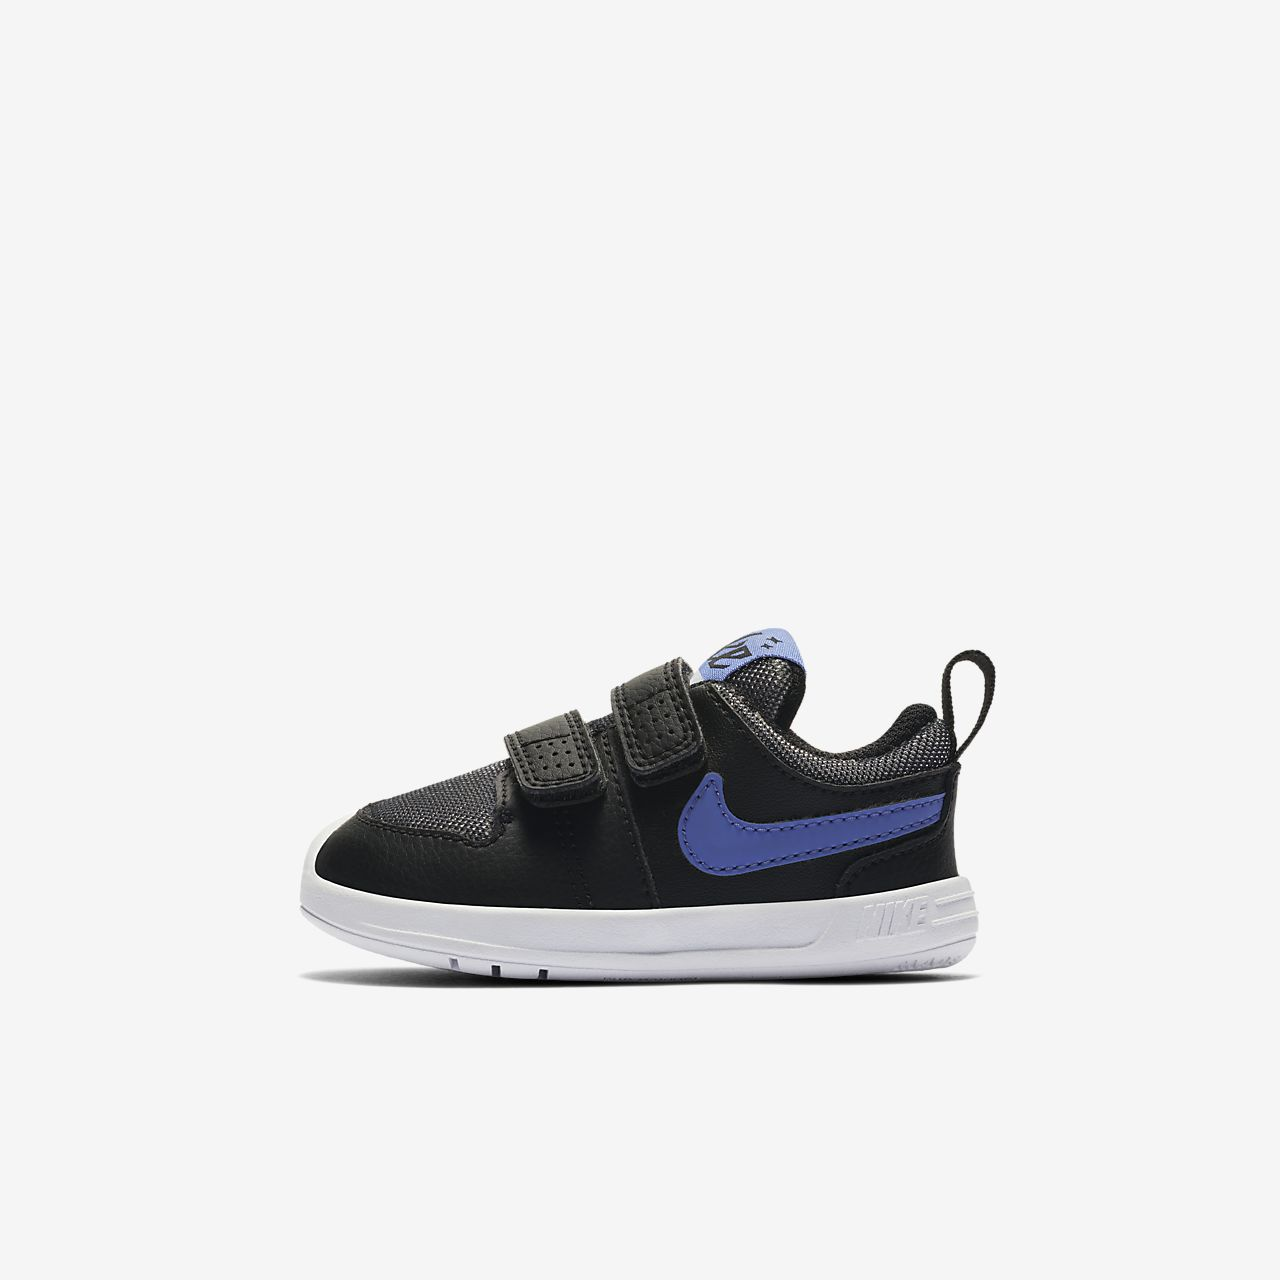 Nike Pico 5 Glitter Baby and Toddler Shoe